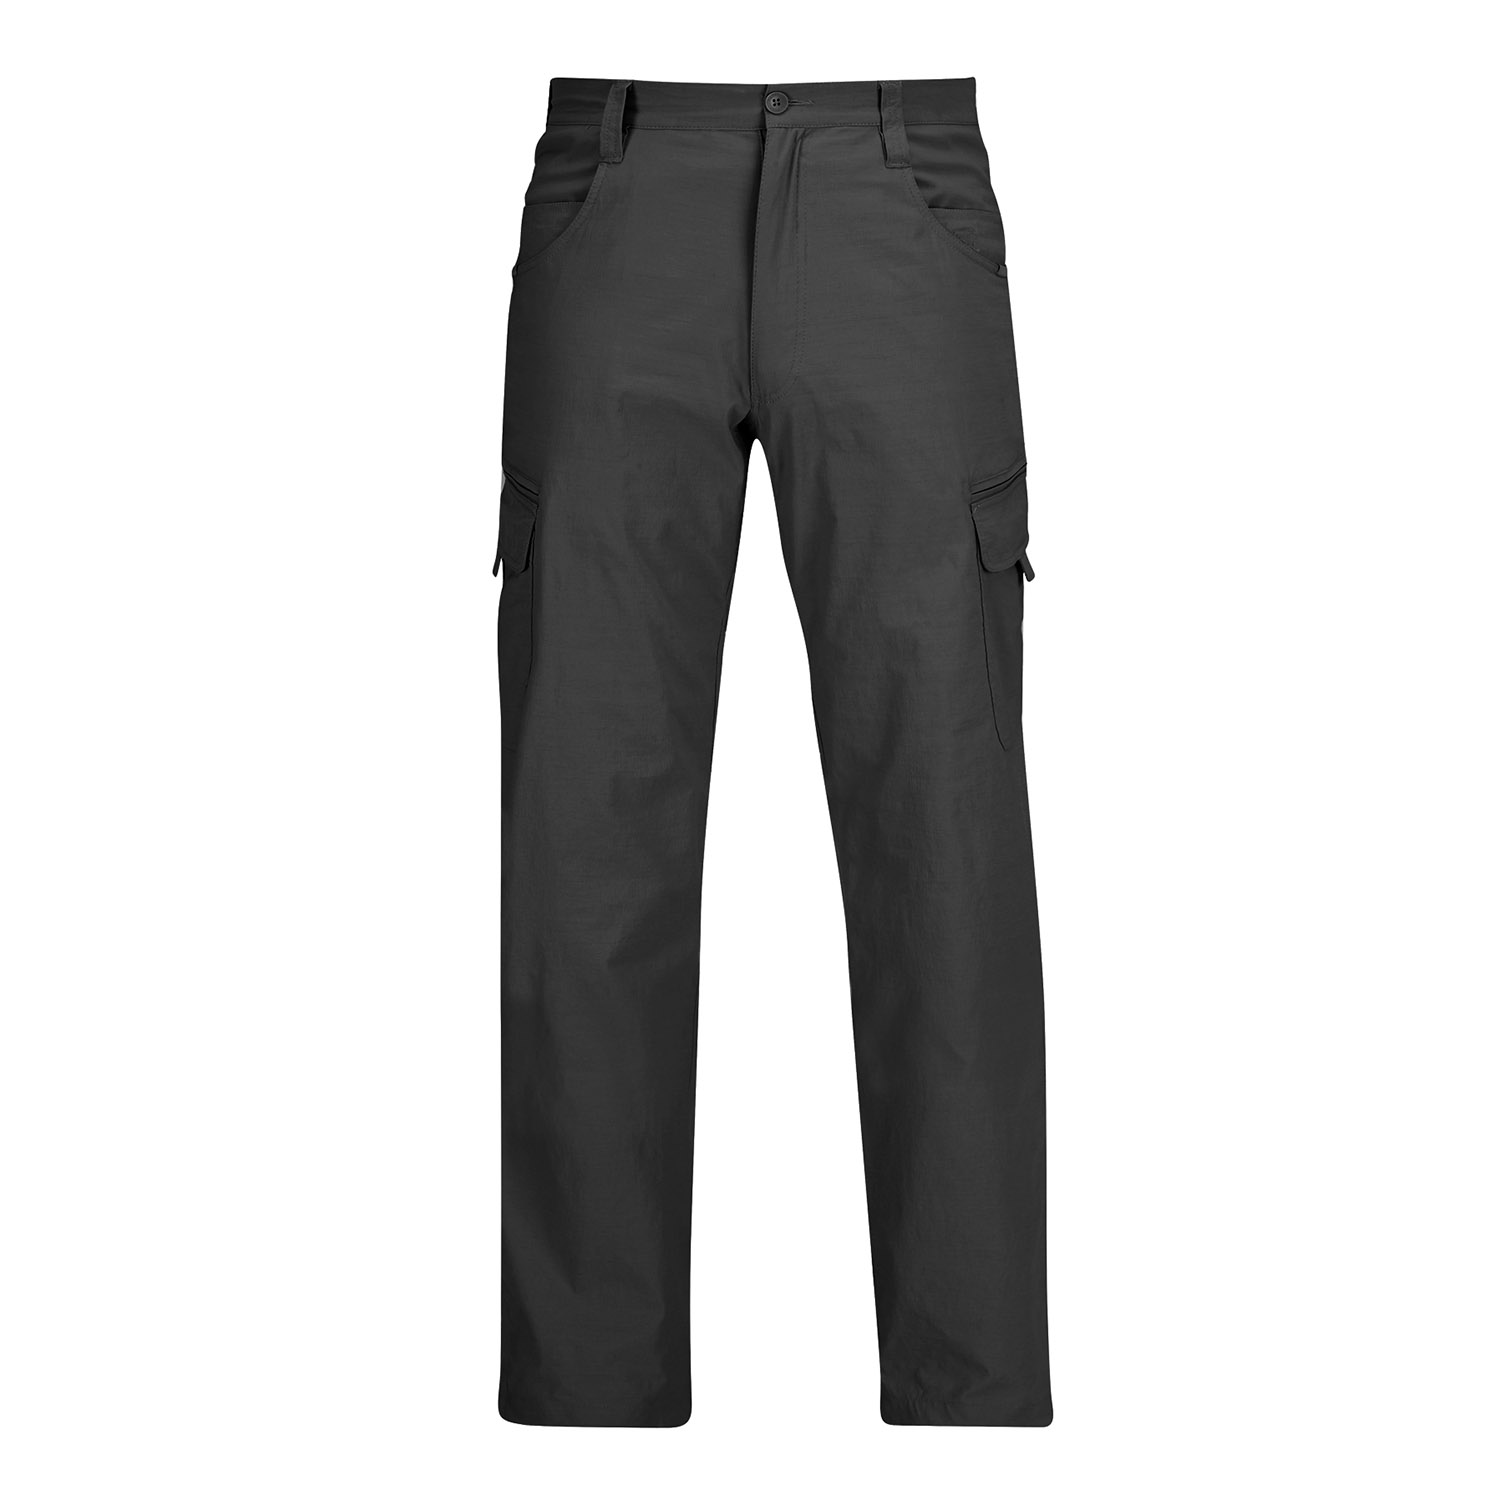 Propper Summer Weight Tactical Pants